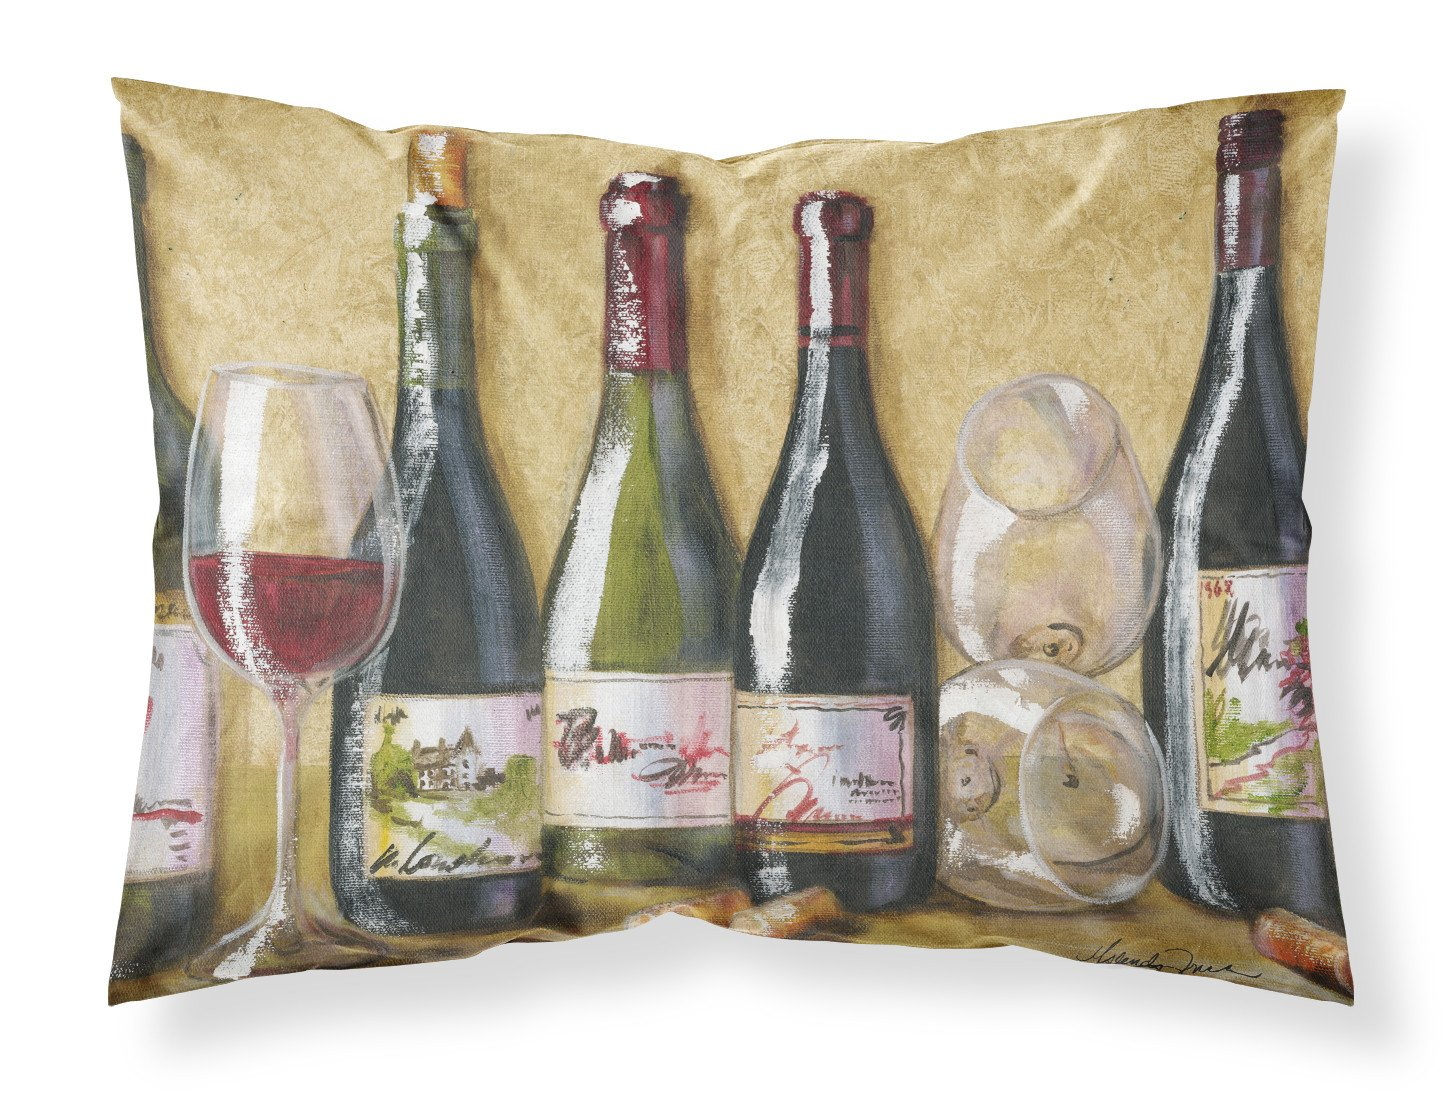 Wine Du Vin by Malenda Trick Fabric Standard Pillowcase TMTR0271PILLOWCASE by Caroline's Treasures